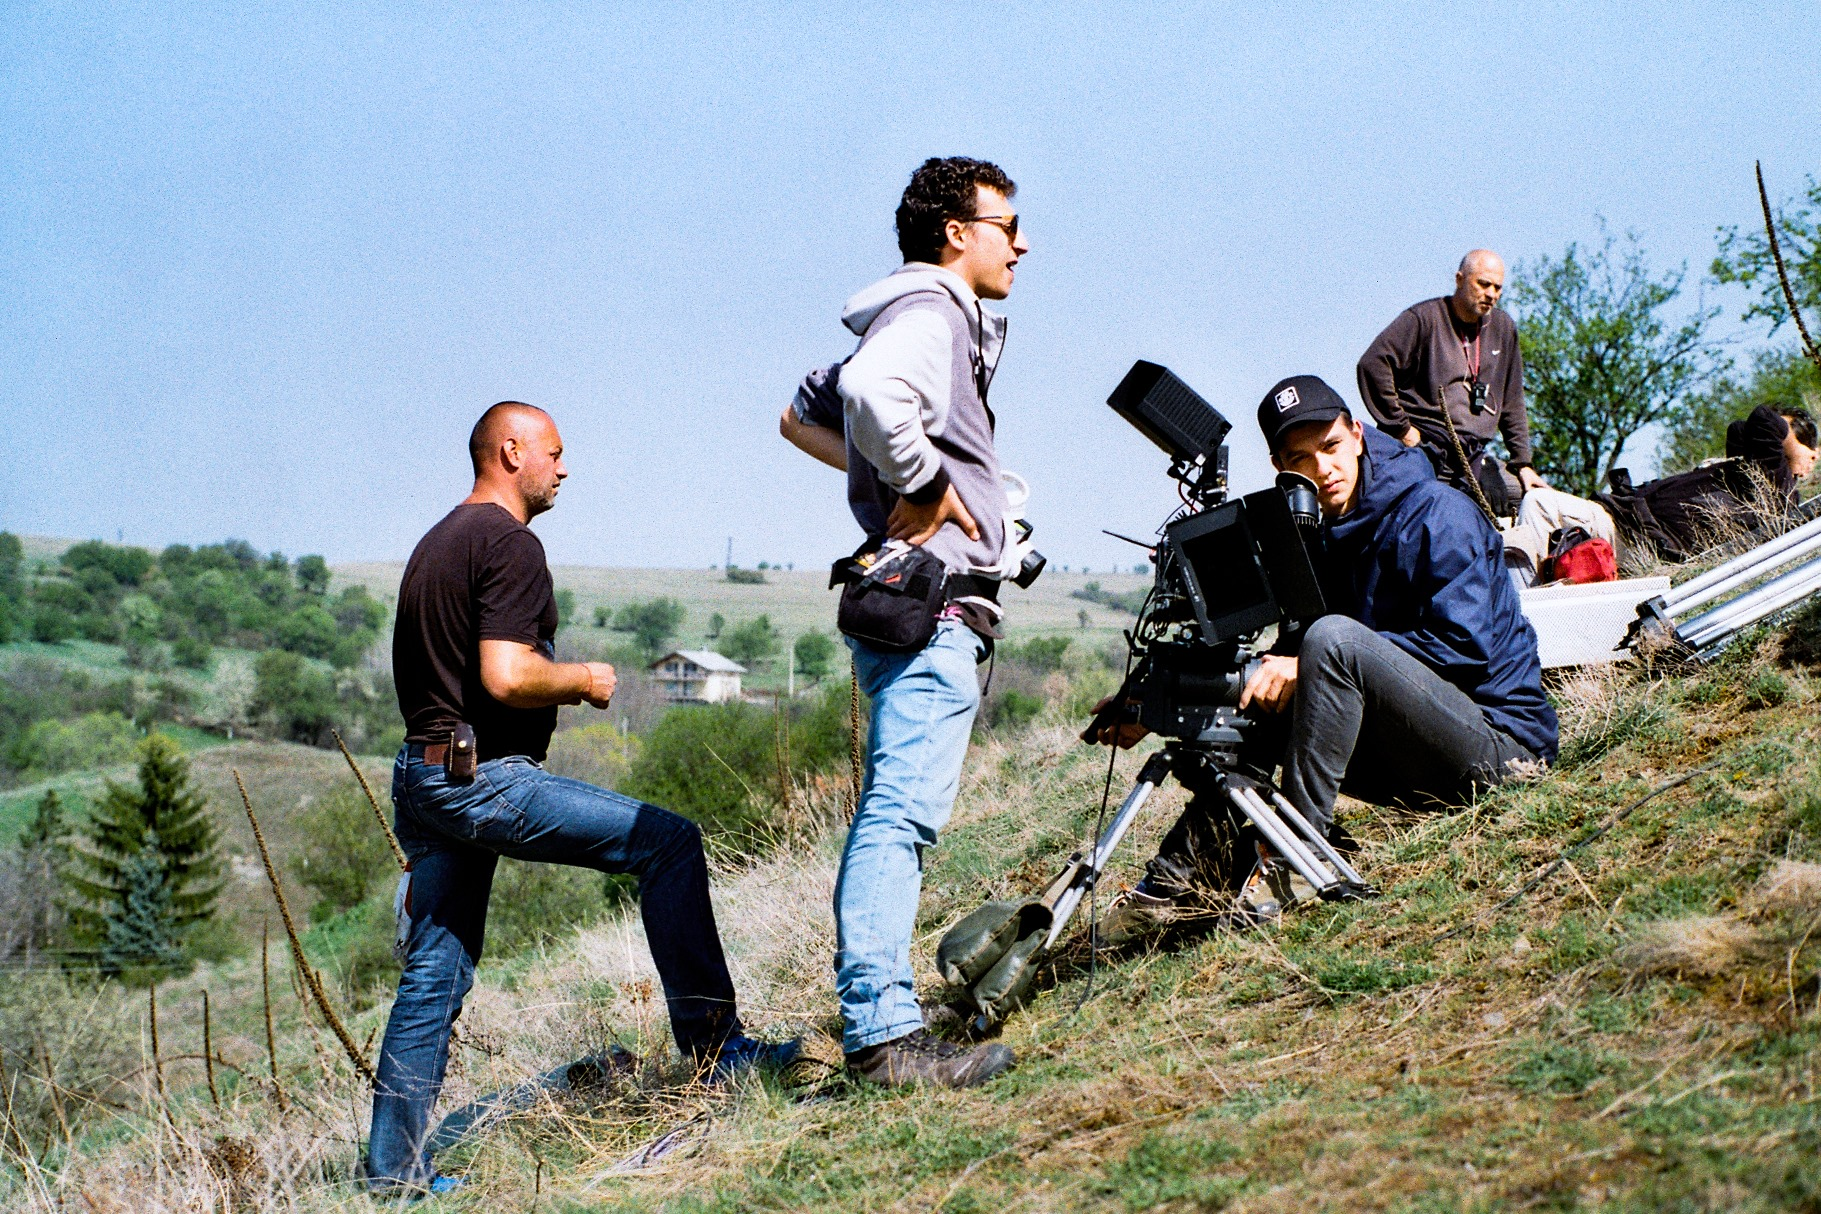 Camera crew behind the scenes during the shooting of a short film  - Gift.